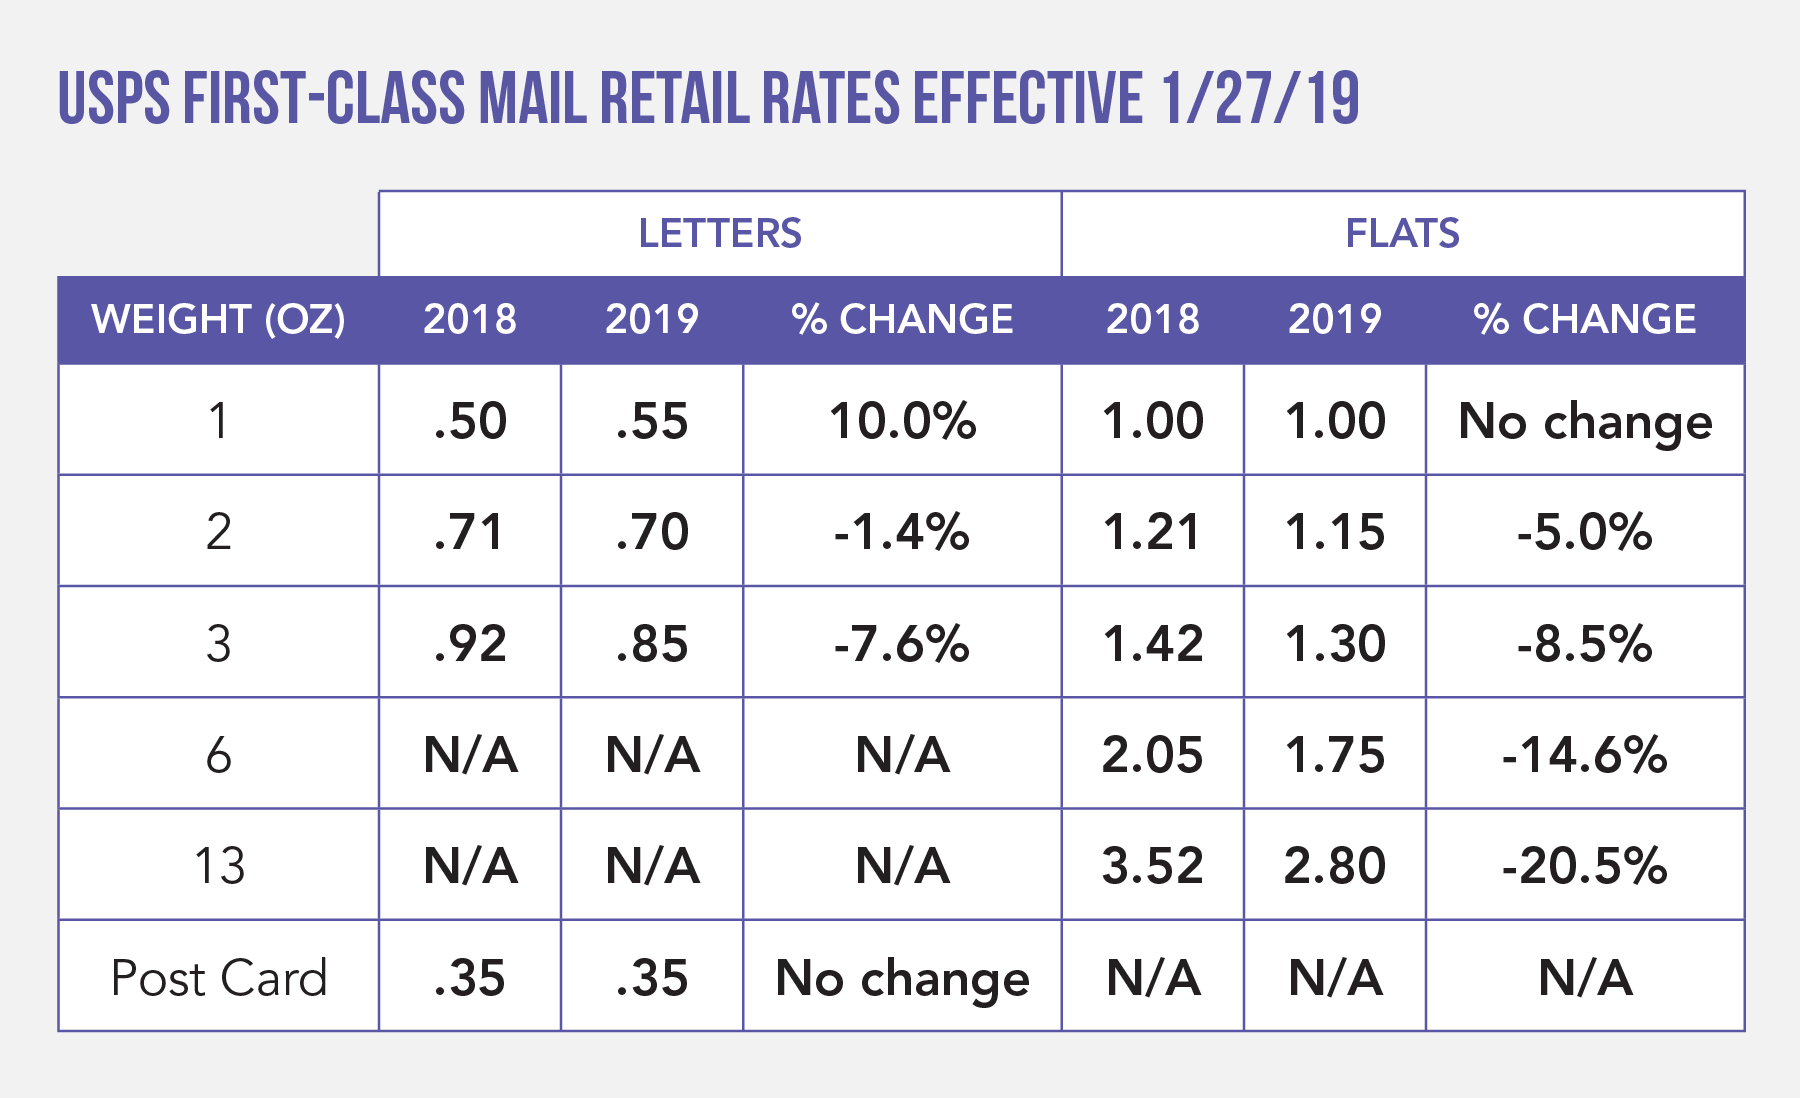 USPS First-Class Mail Retail Rates Effective January 27, 2019